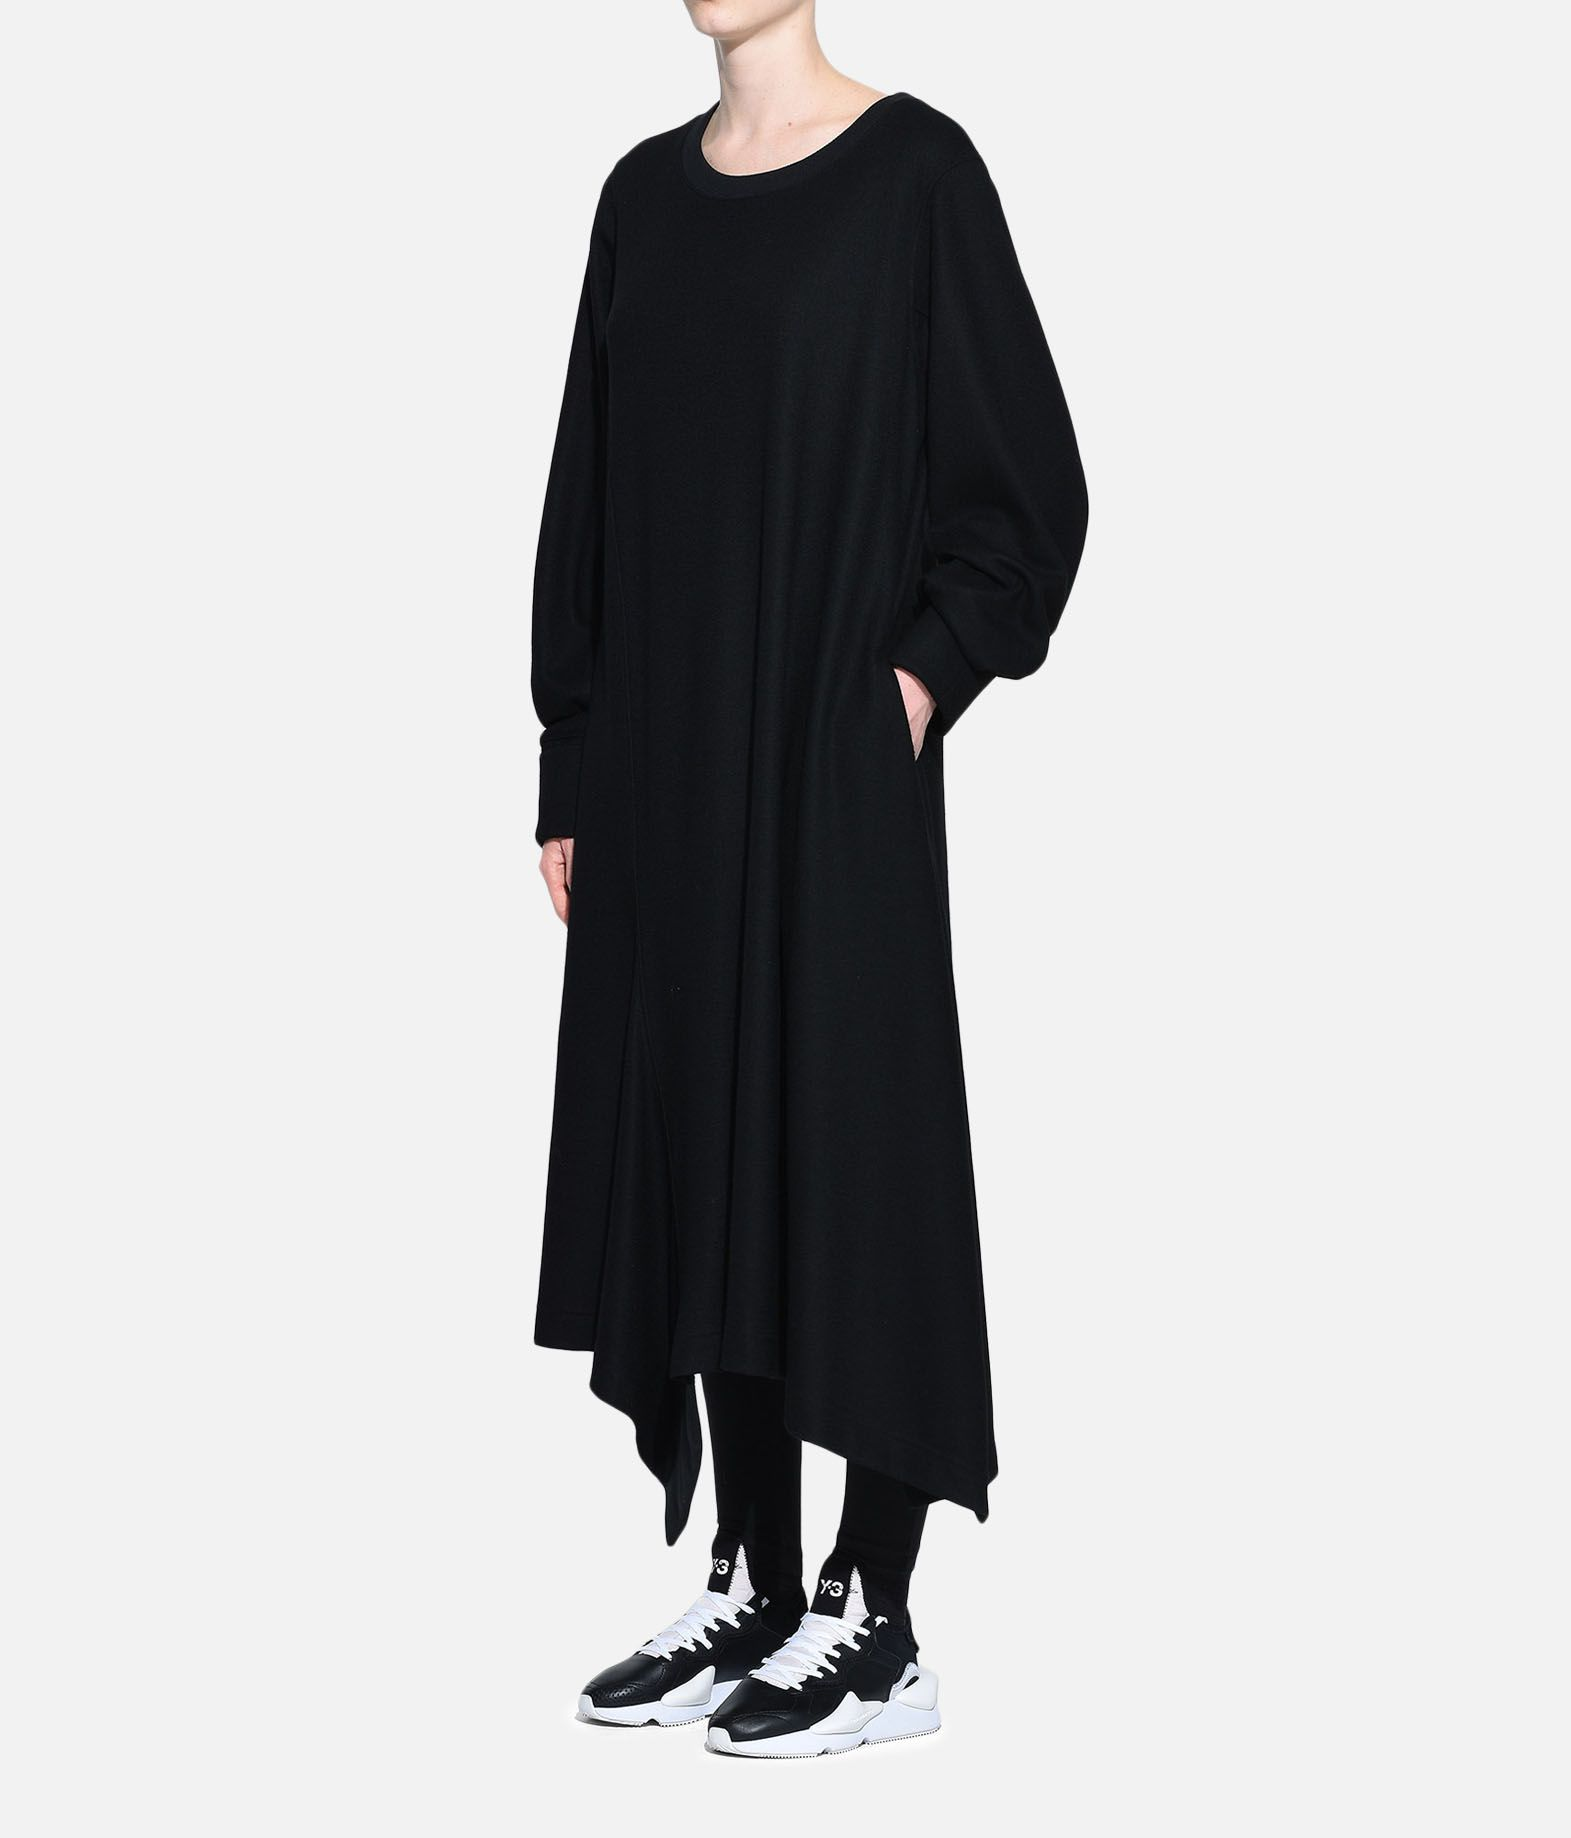 Y-3 Y-3 Wool Dress Long dress Woman e